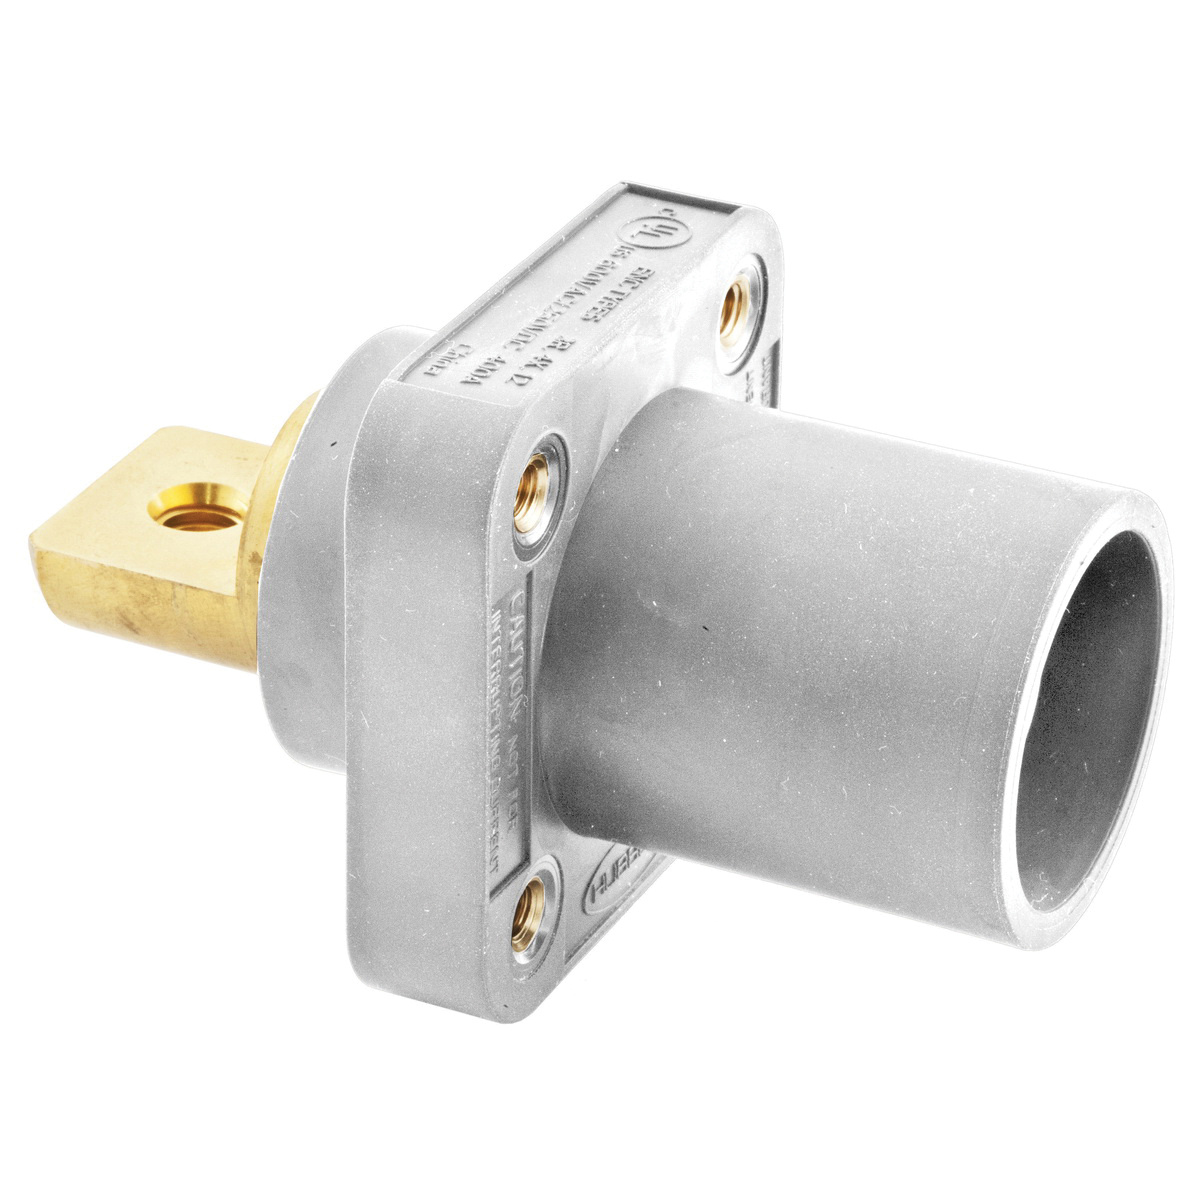 Hubbell Wiring Hblmrbw 16 Series Male Receptacle 600 Volt Ac 250 Dc 300